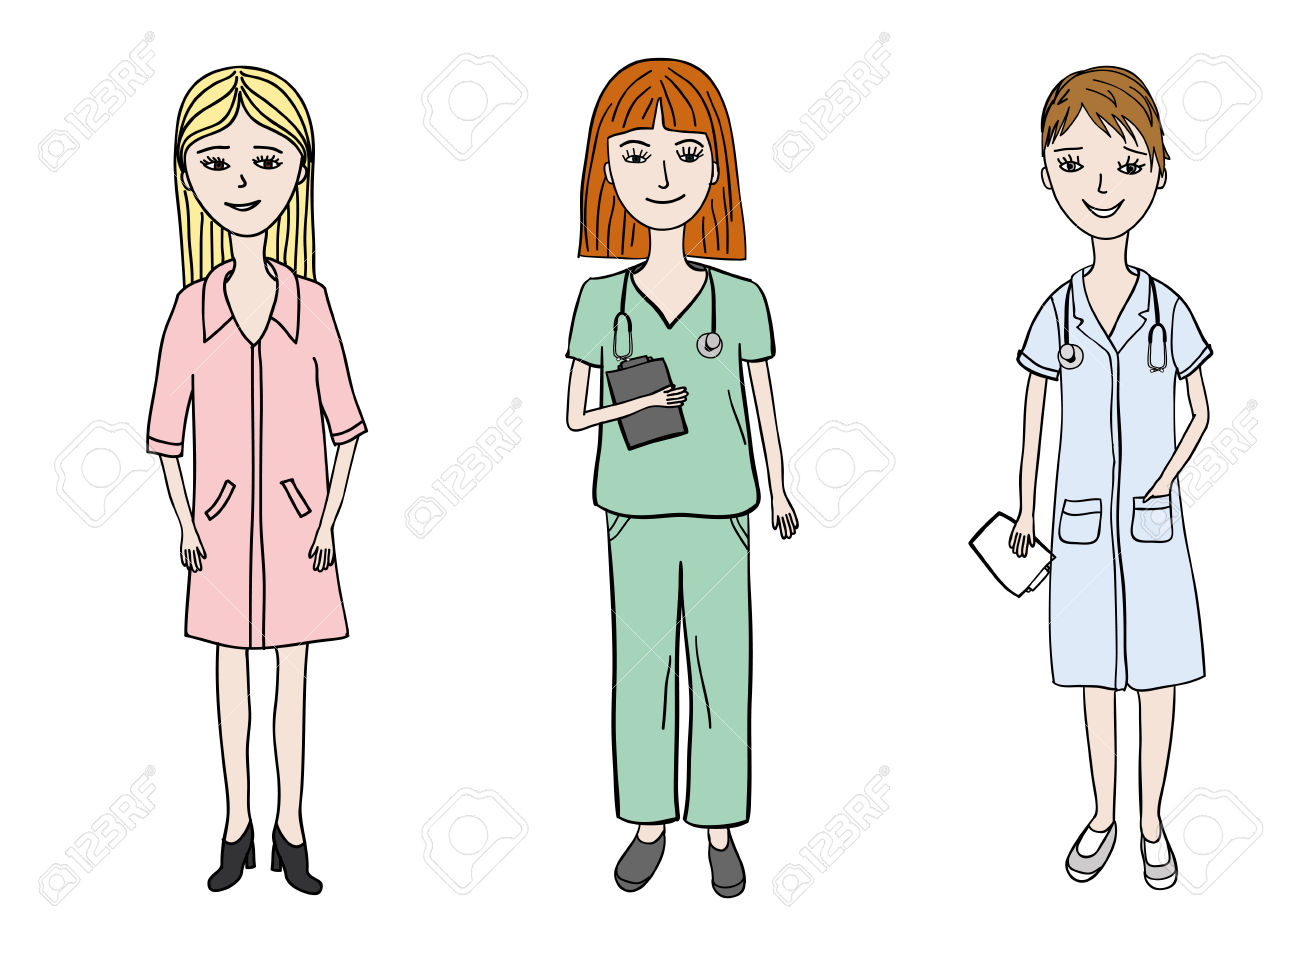 Three Young Woman Dressed In Medical Uniform Wearing Stethoscopes.